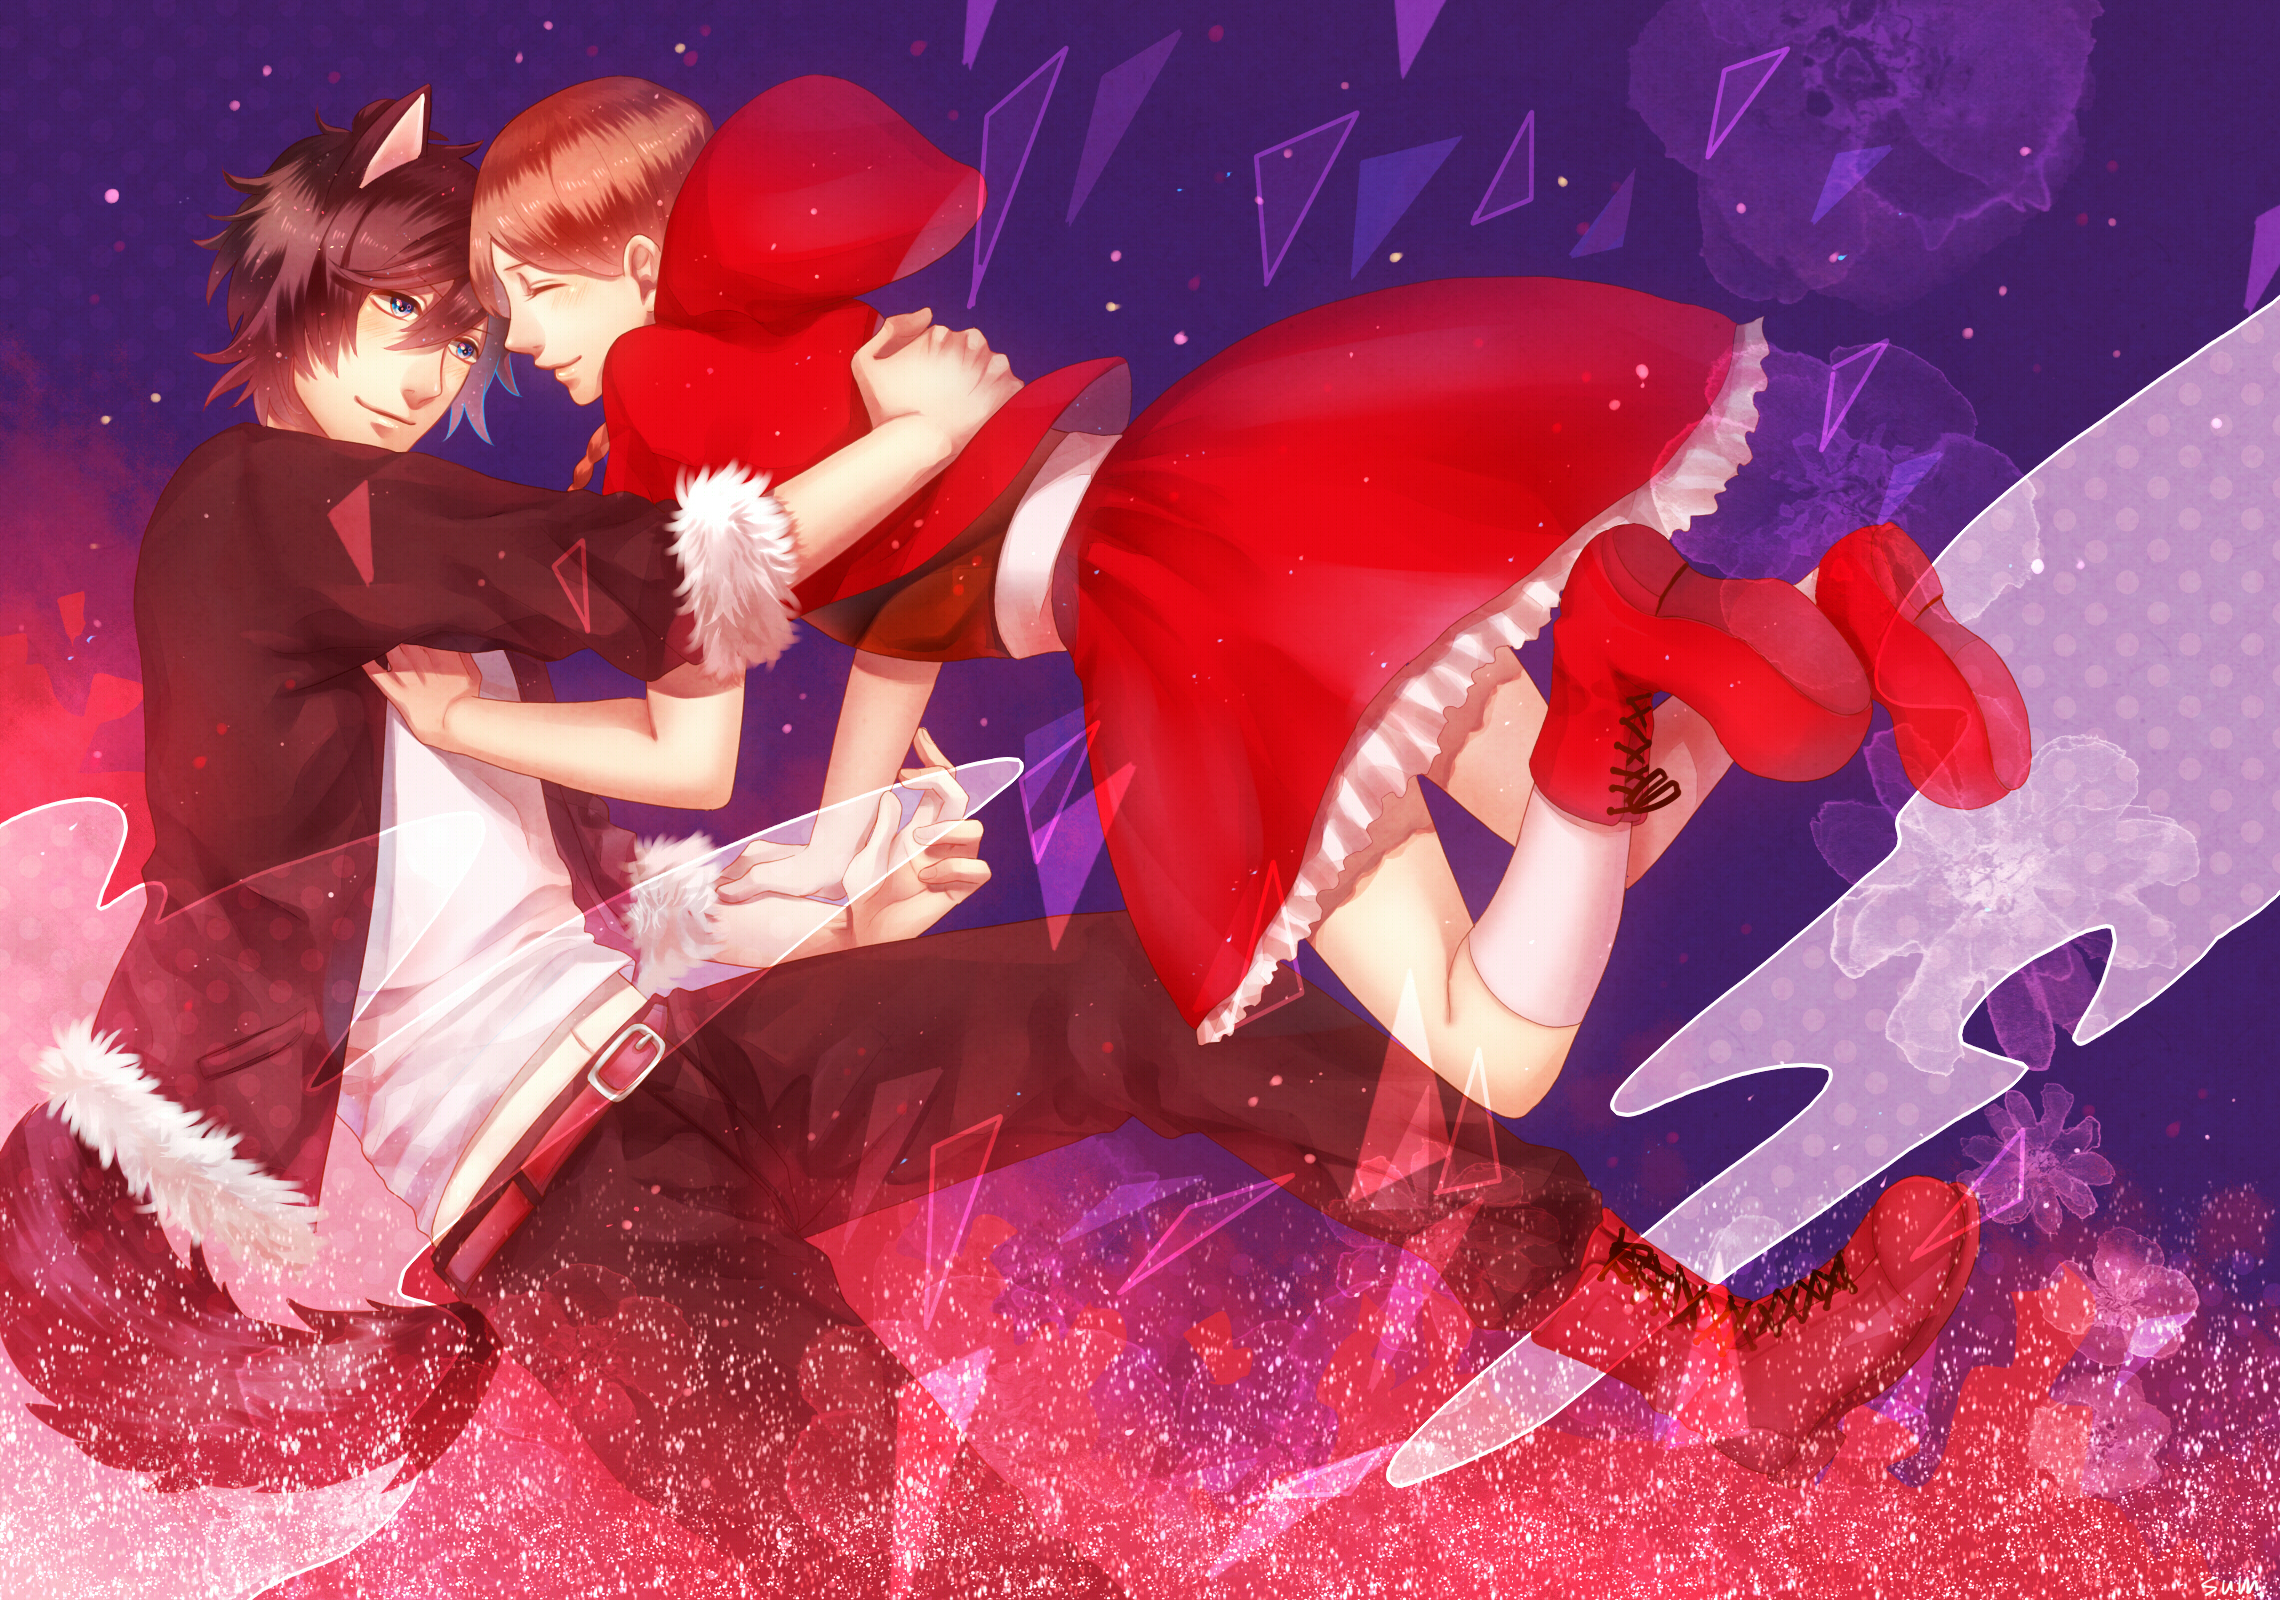 Little red riding hood wolf anime the wolf fell in love with red riding hood1221955 zerochan nanopics pictures little red riding hood little red ttle red riding hood sciox Choice Image